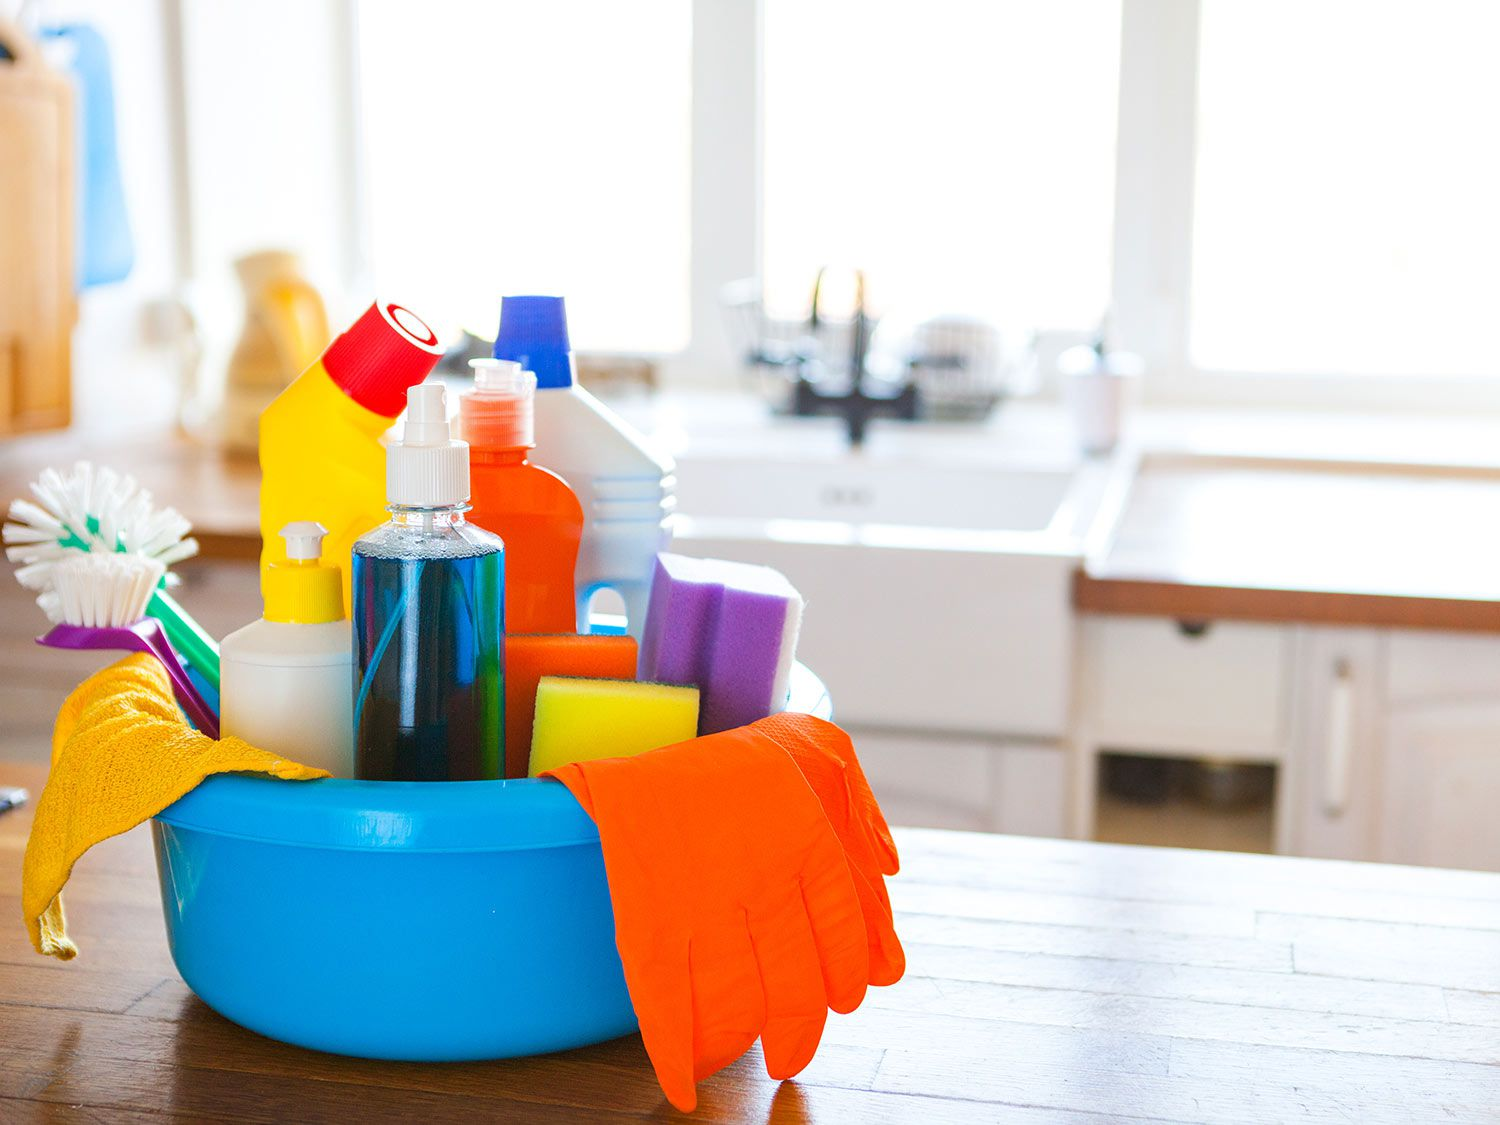 Bucket of kitchen-cleaning products